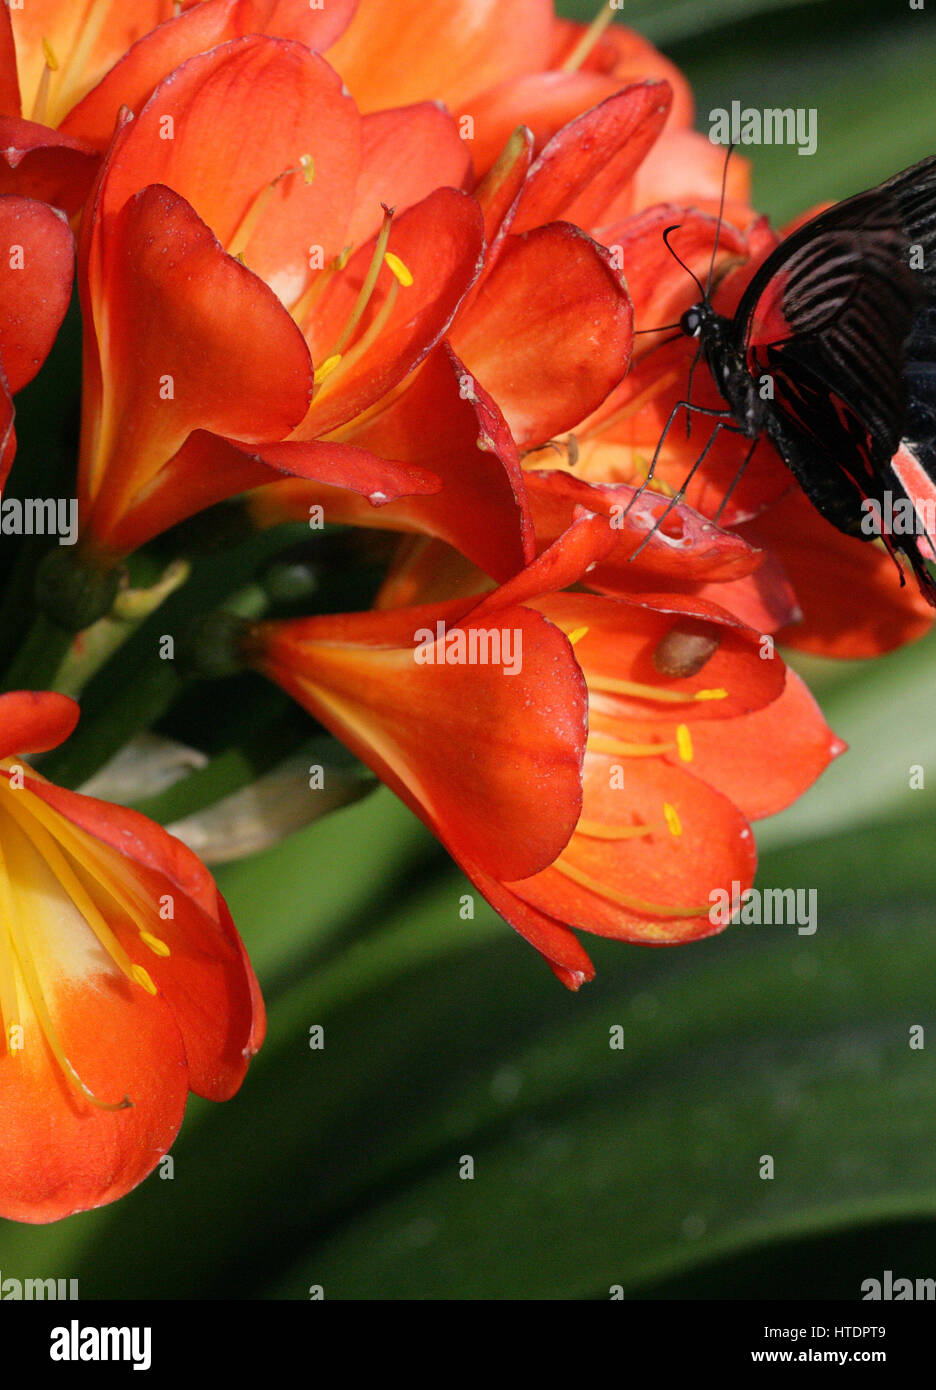 Papilio rumanzovia, black and red tropical butterfly feeding on flowers.Full frame. Colour contrast. Macro photography. - Stock Image